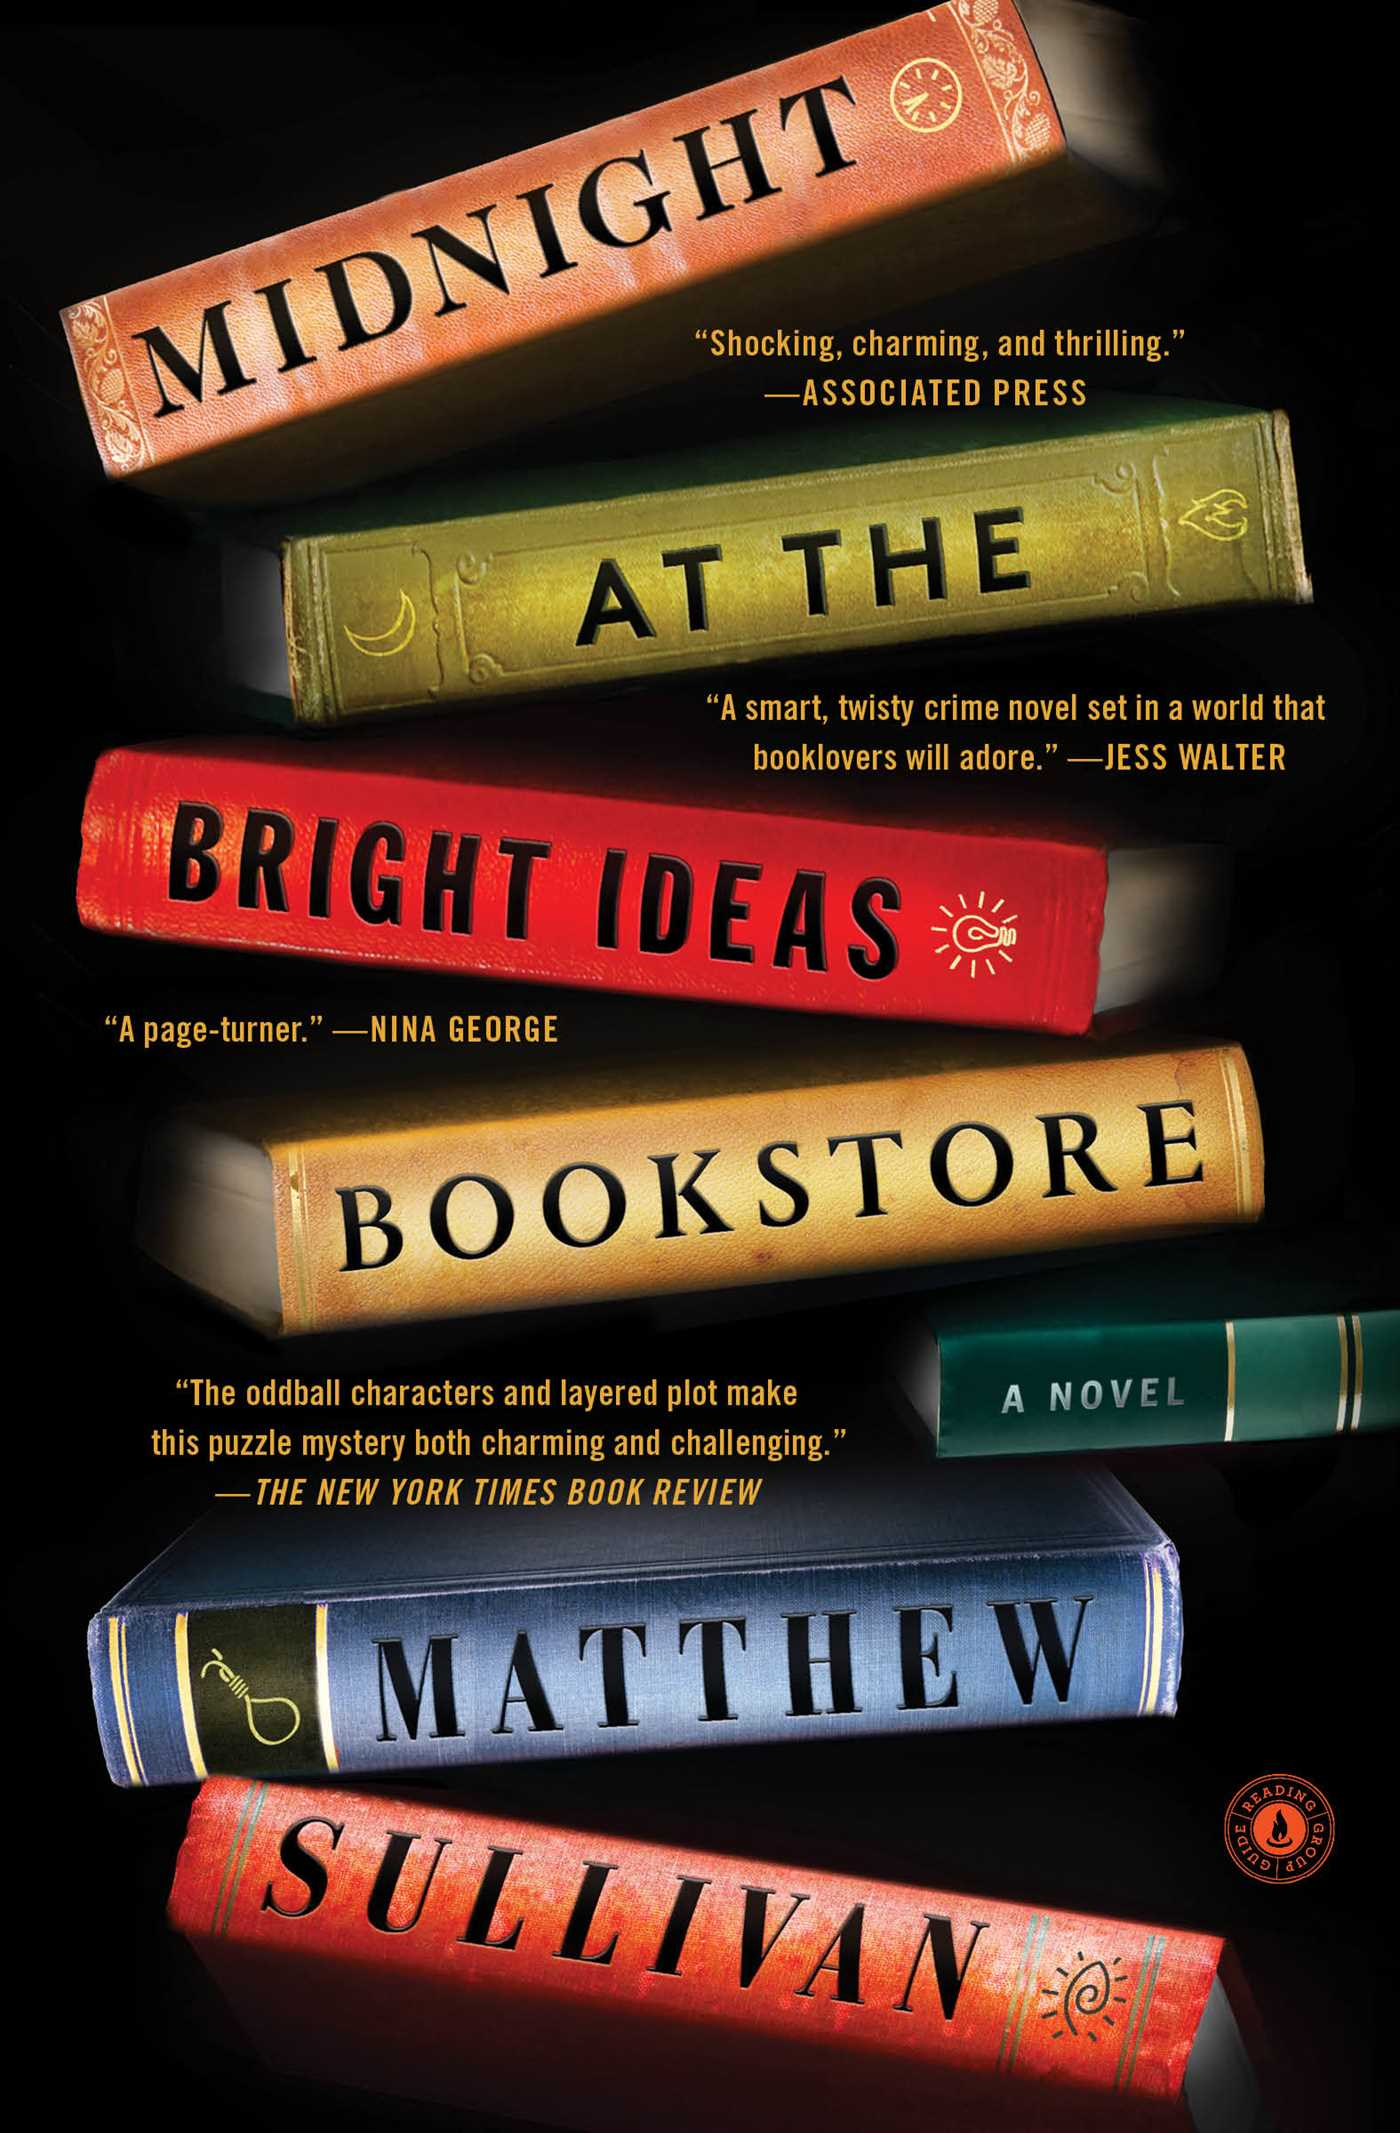 Midnight at the bright ideas bookstore 9781501116858 hr